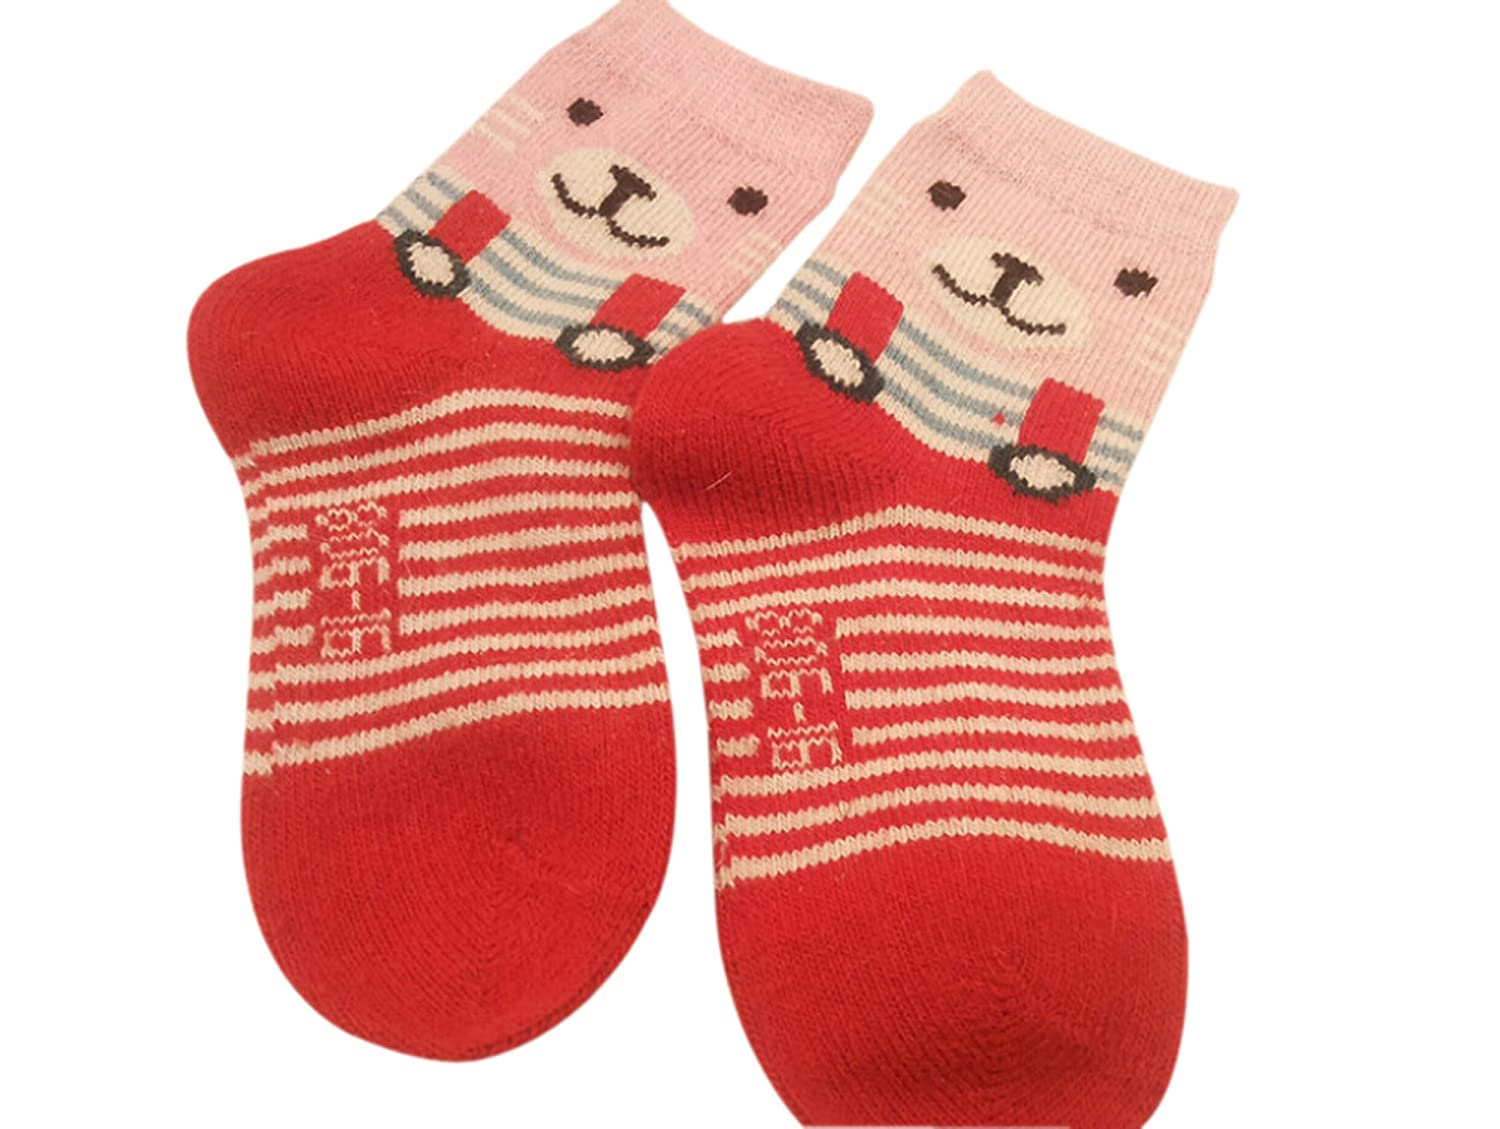 Easting Unisex Child's Knit Warm Rabbit Hair Wool Socks 5 Pairs